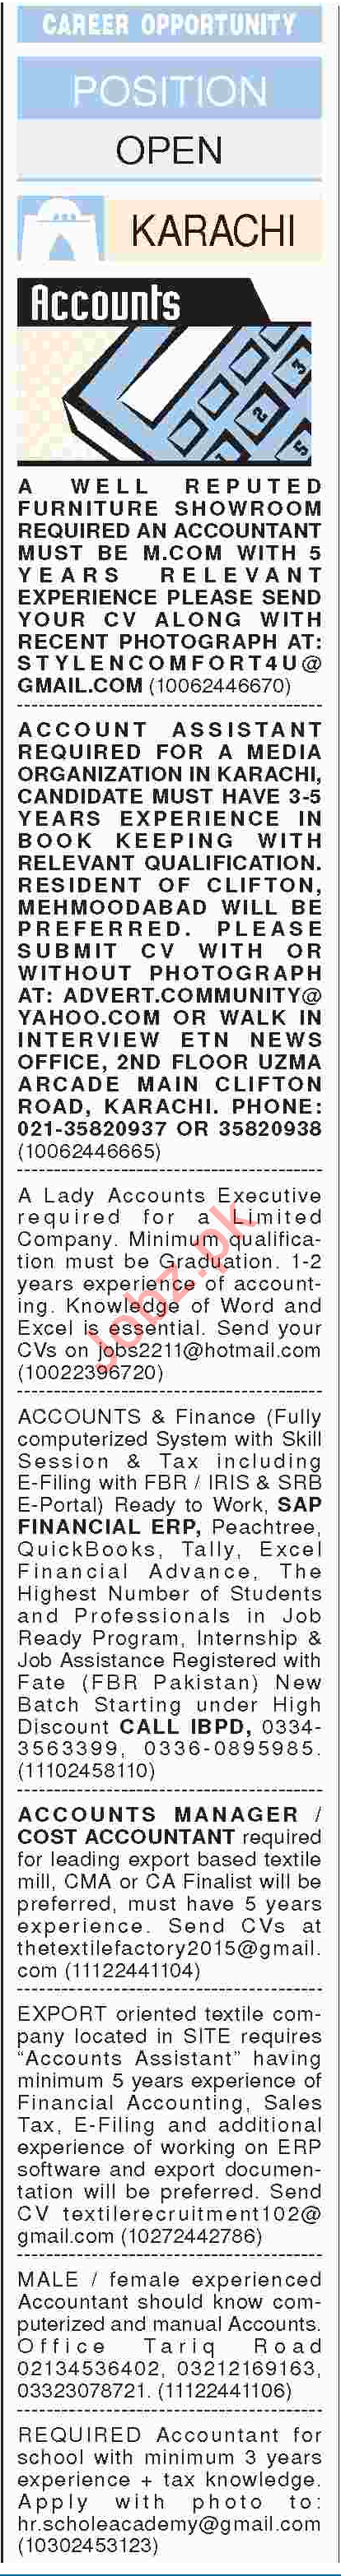 Accounts & Finance Officers Job Opportunities 2018